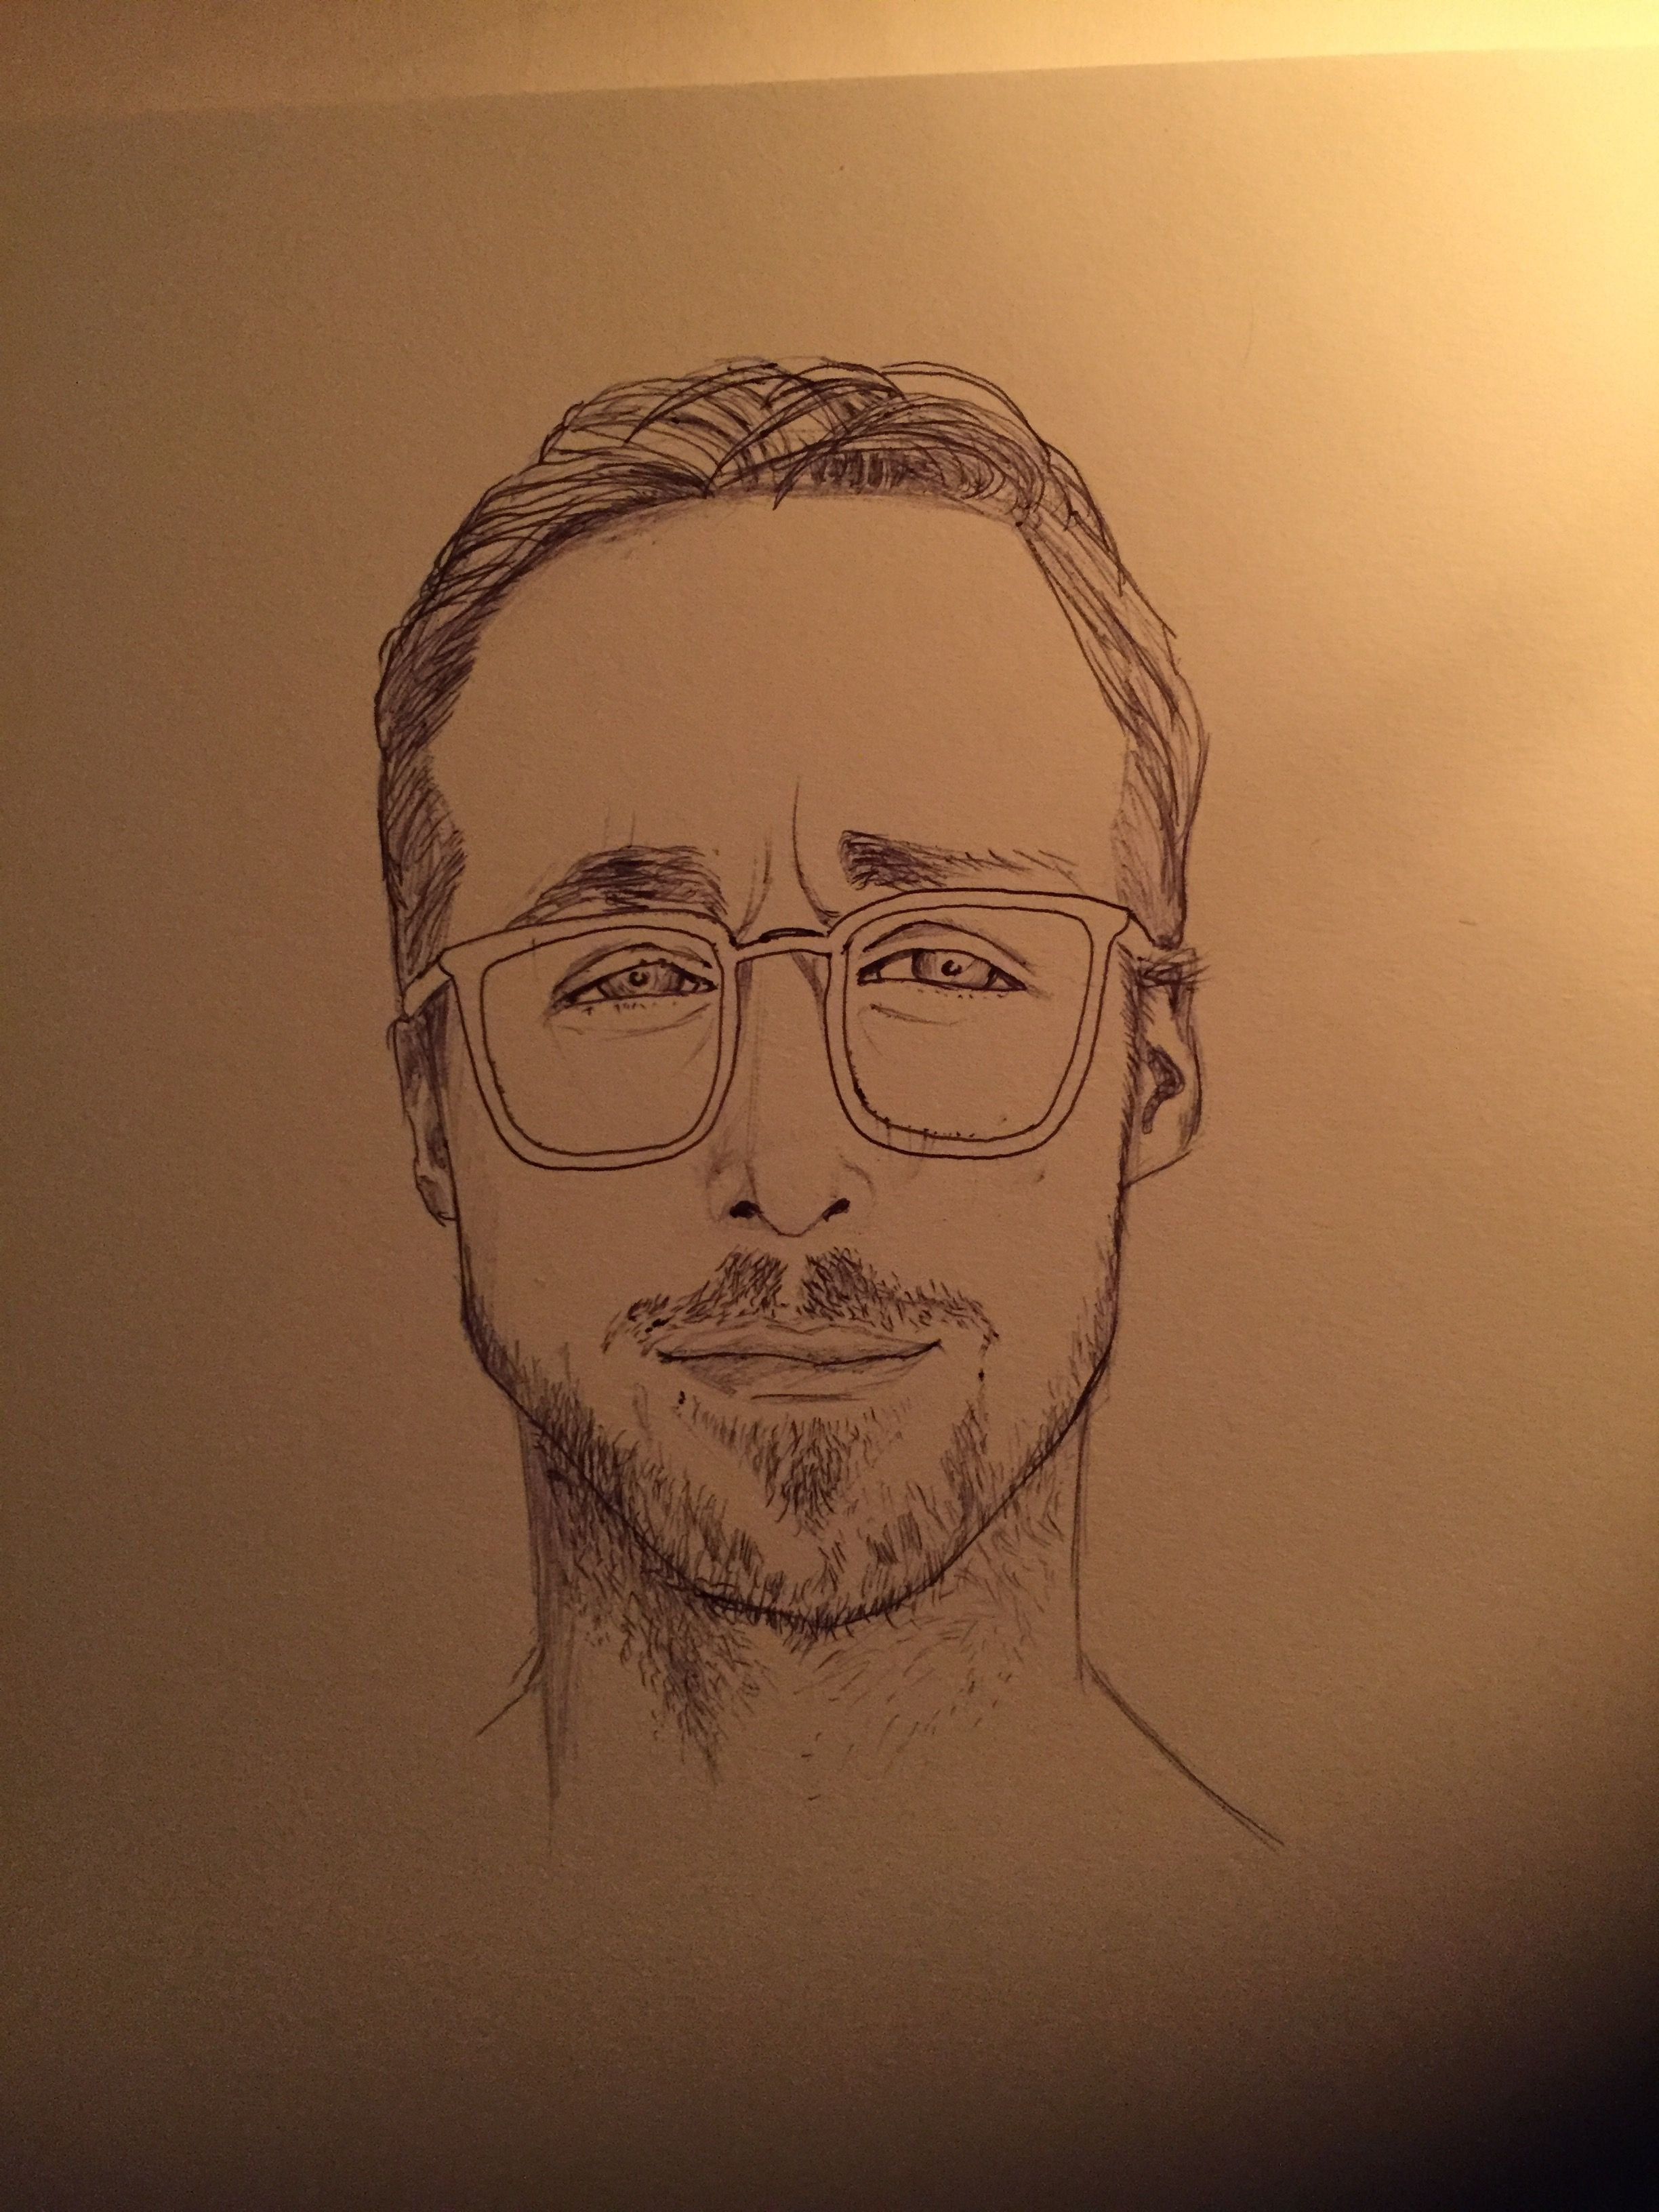 Ryan, Ryan.. hey, girl. #ryangosling #drawing #blackpen